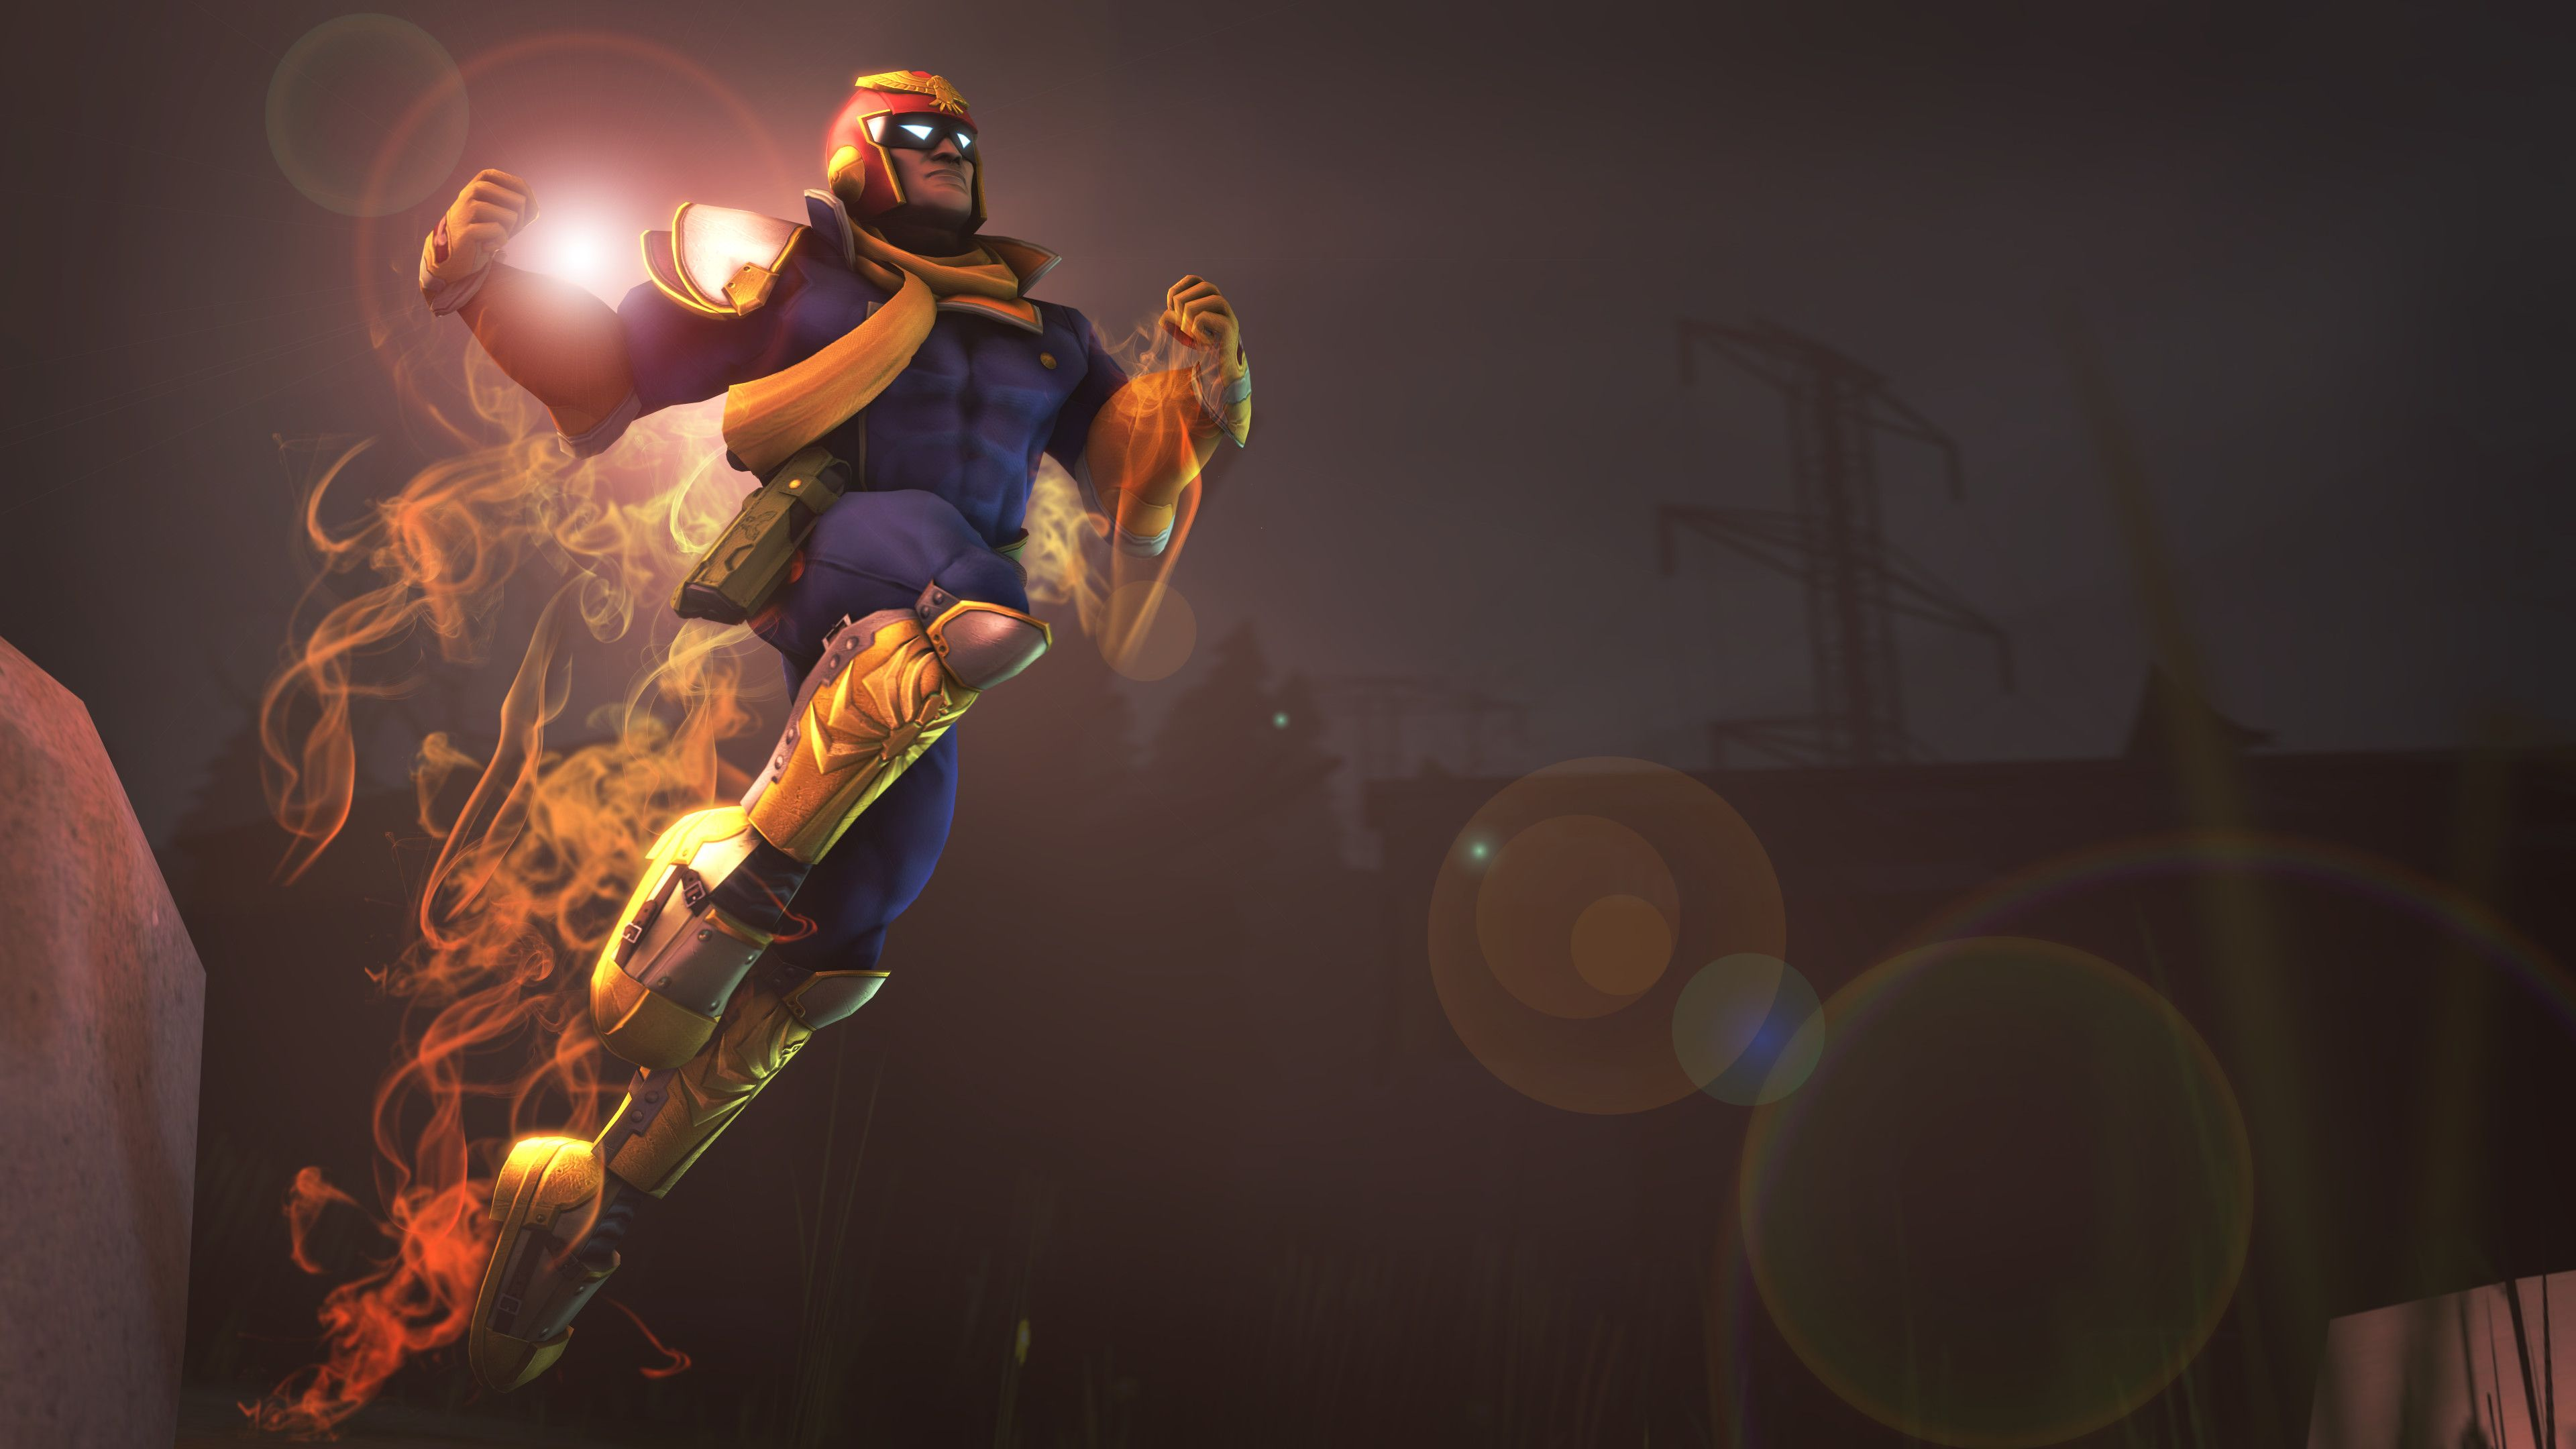 75 Captain Falcon Wallpapers On Wallpaperplay Winter Soldier Wallpaper Falcon Wallpaper Captain Falcon